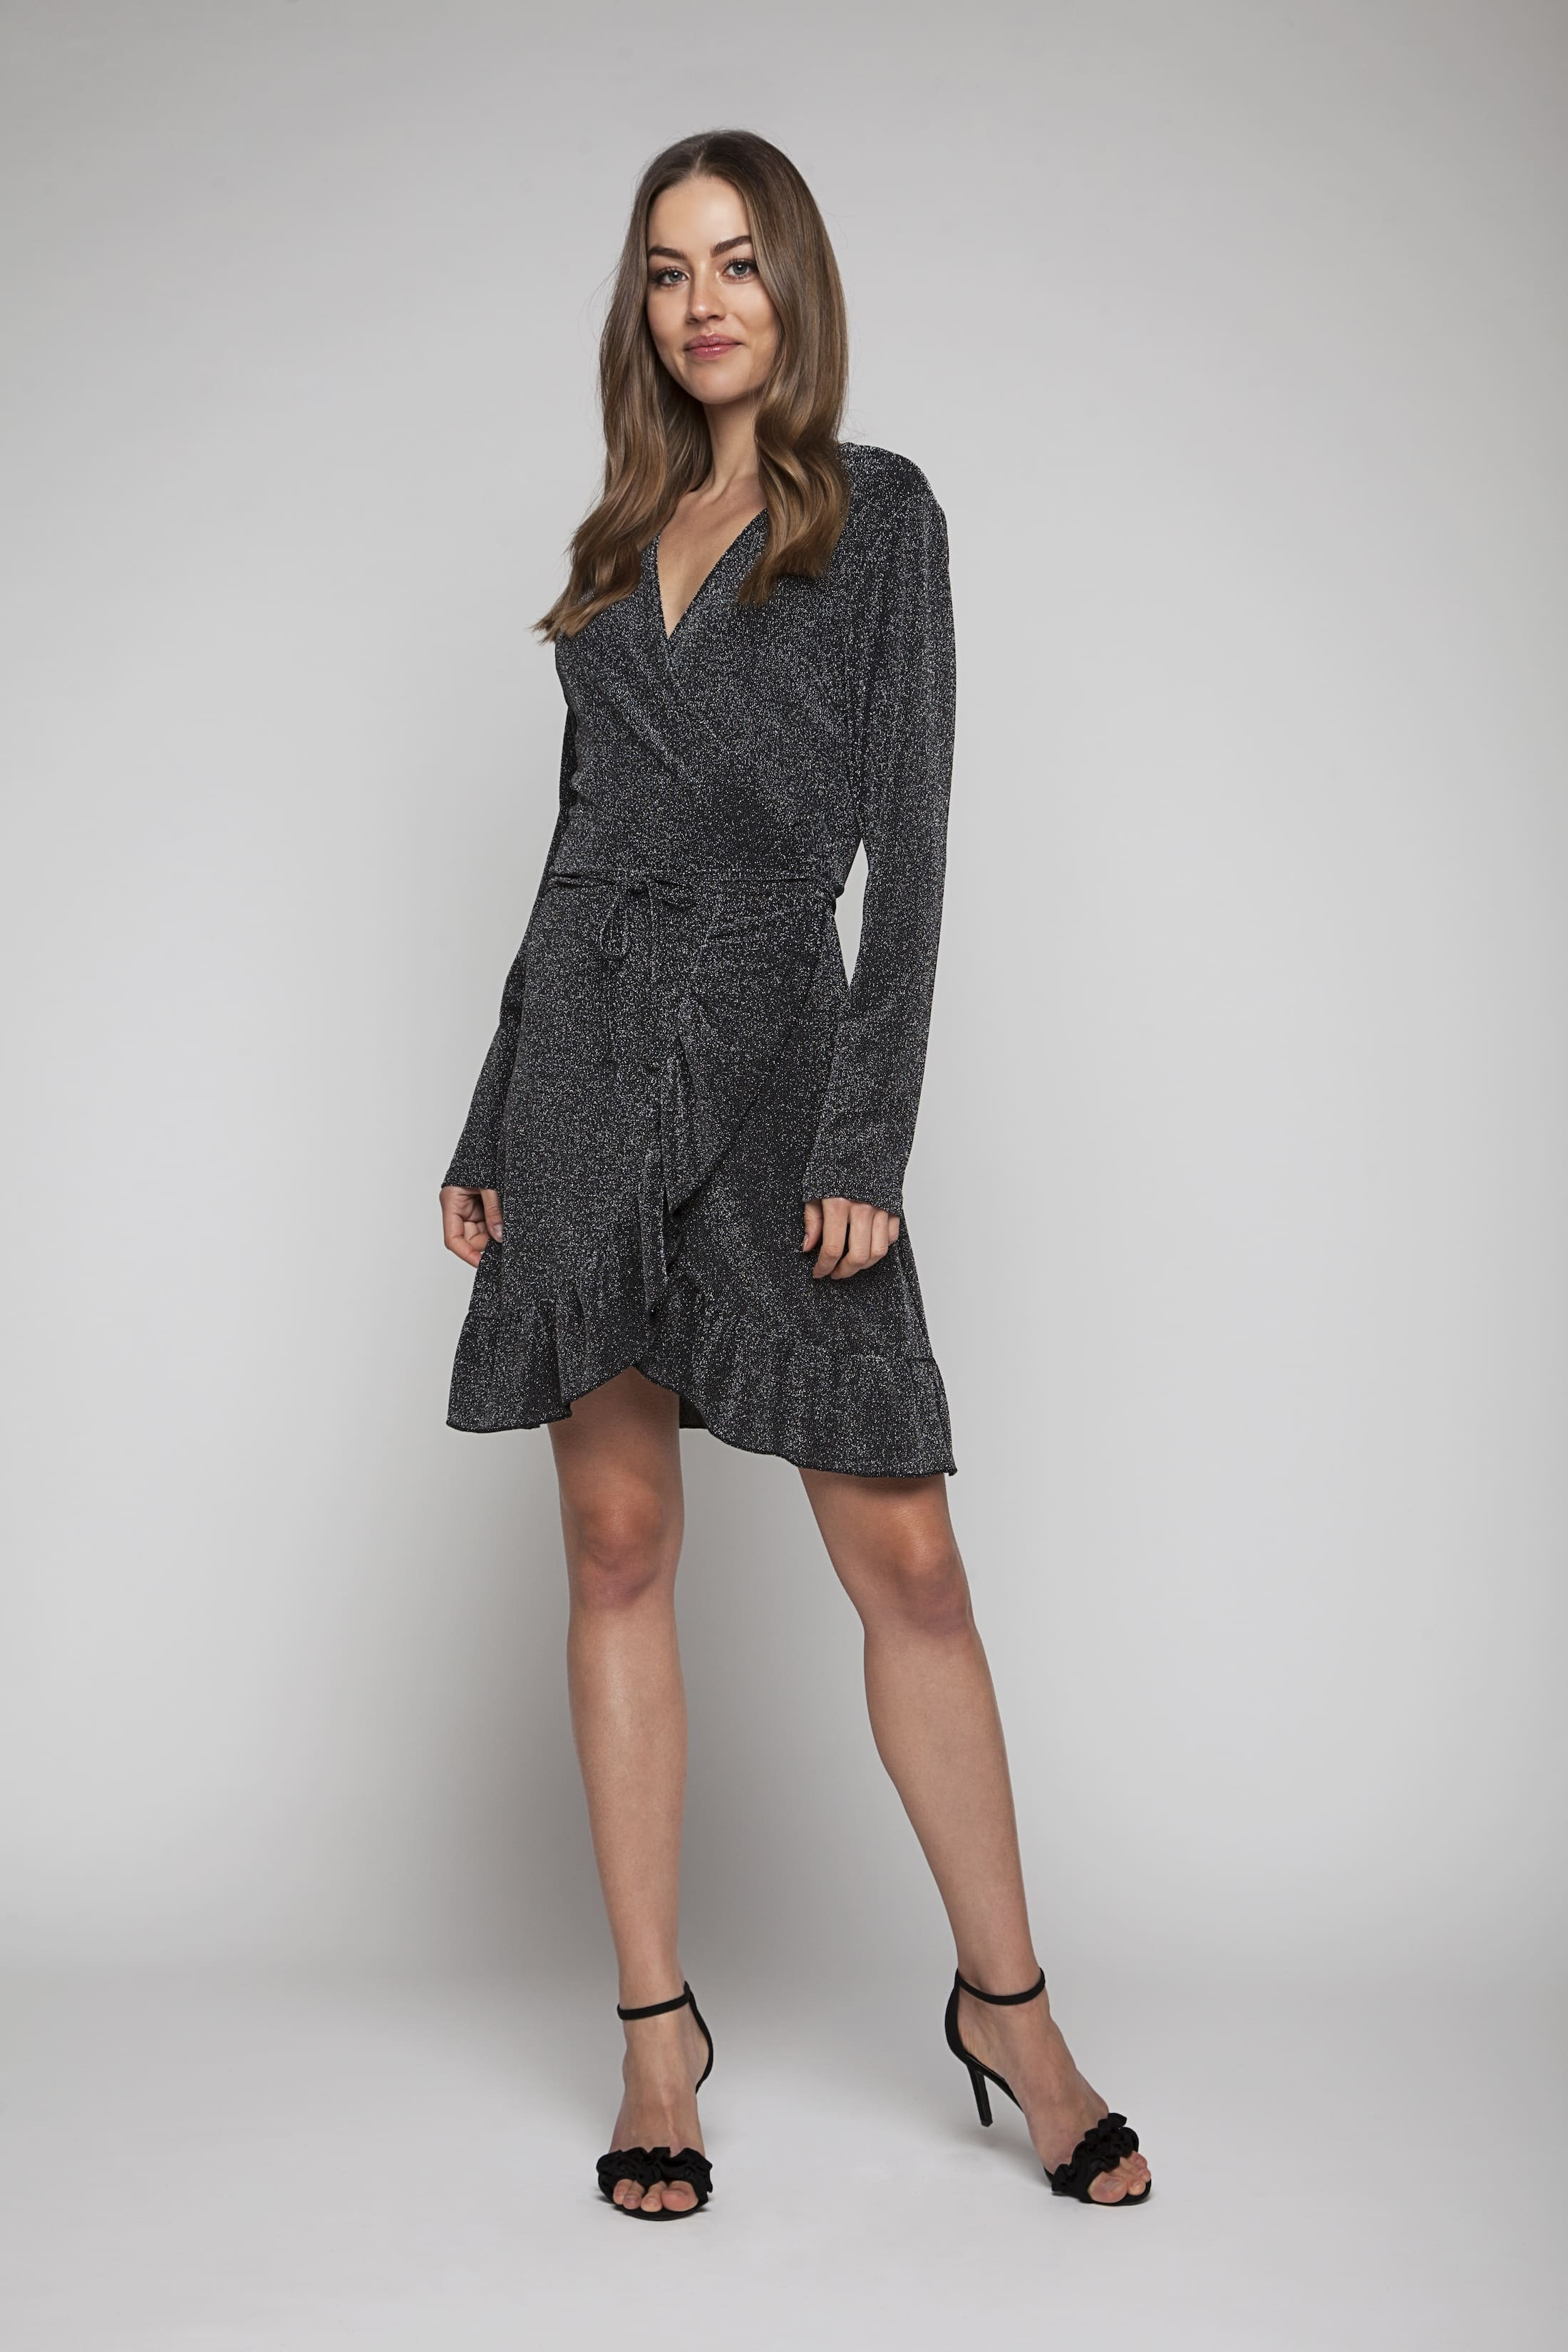 Dark silver glitter wrap dress